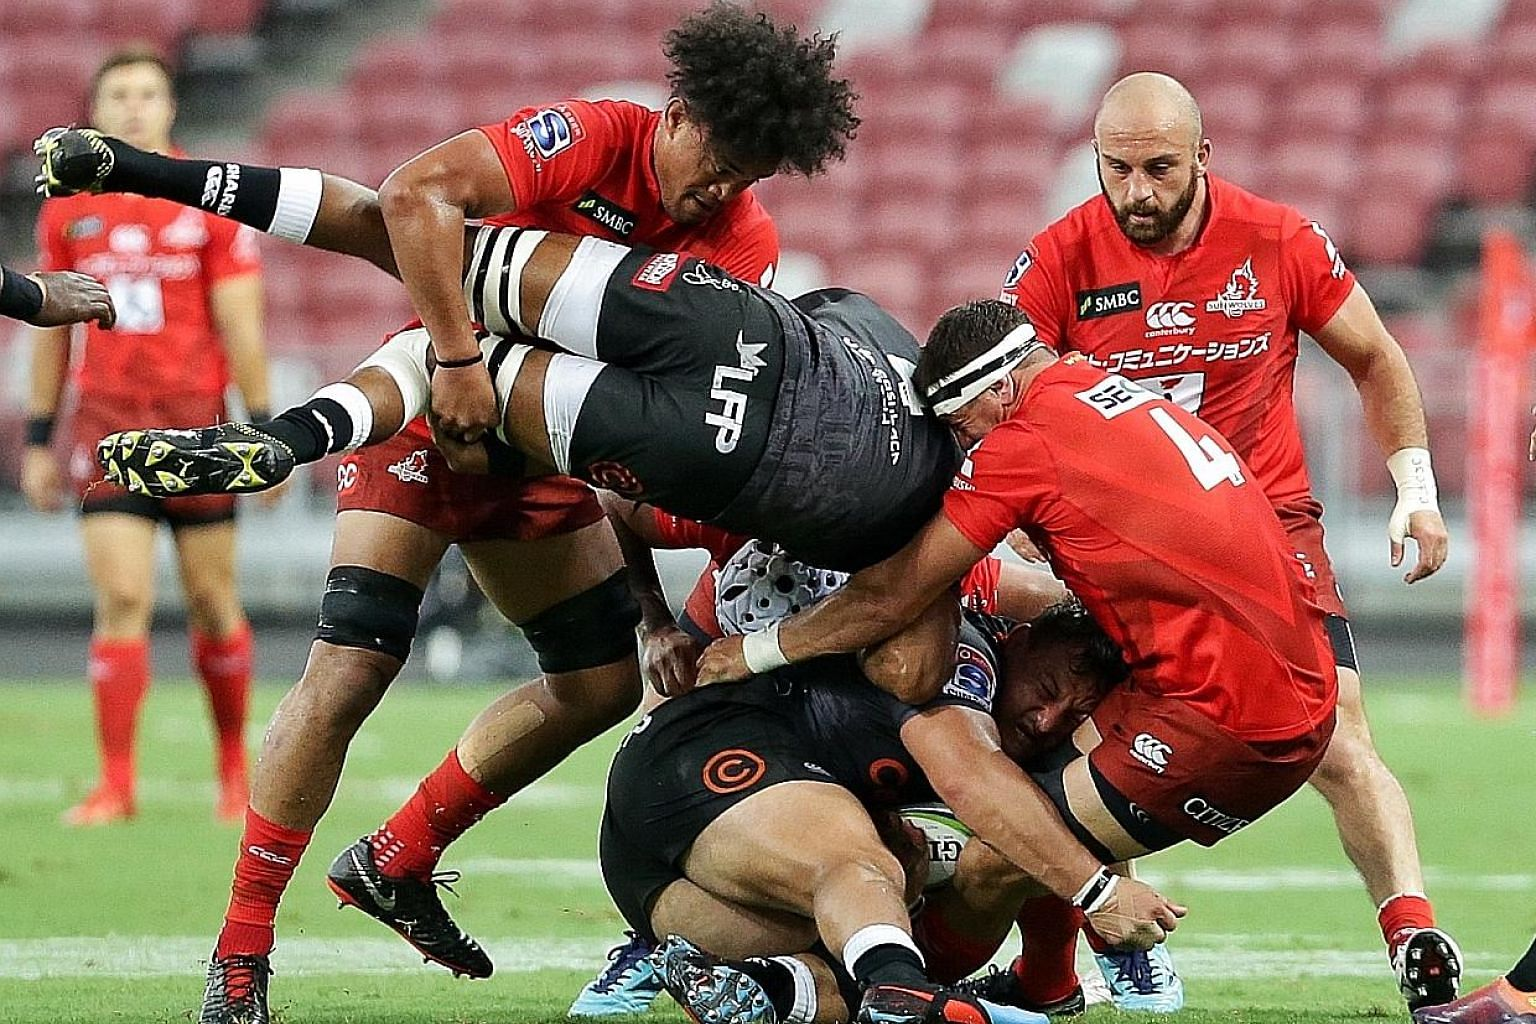 Sunwolves flanker Hendrik Tui (left), lock Luke Thompson (centre) and hooker Jaba Bregvadze (second right) tackling the Sharks players during their Super Rugby match at the National Stadium last night. The Sharks won 45-10.